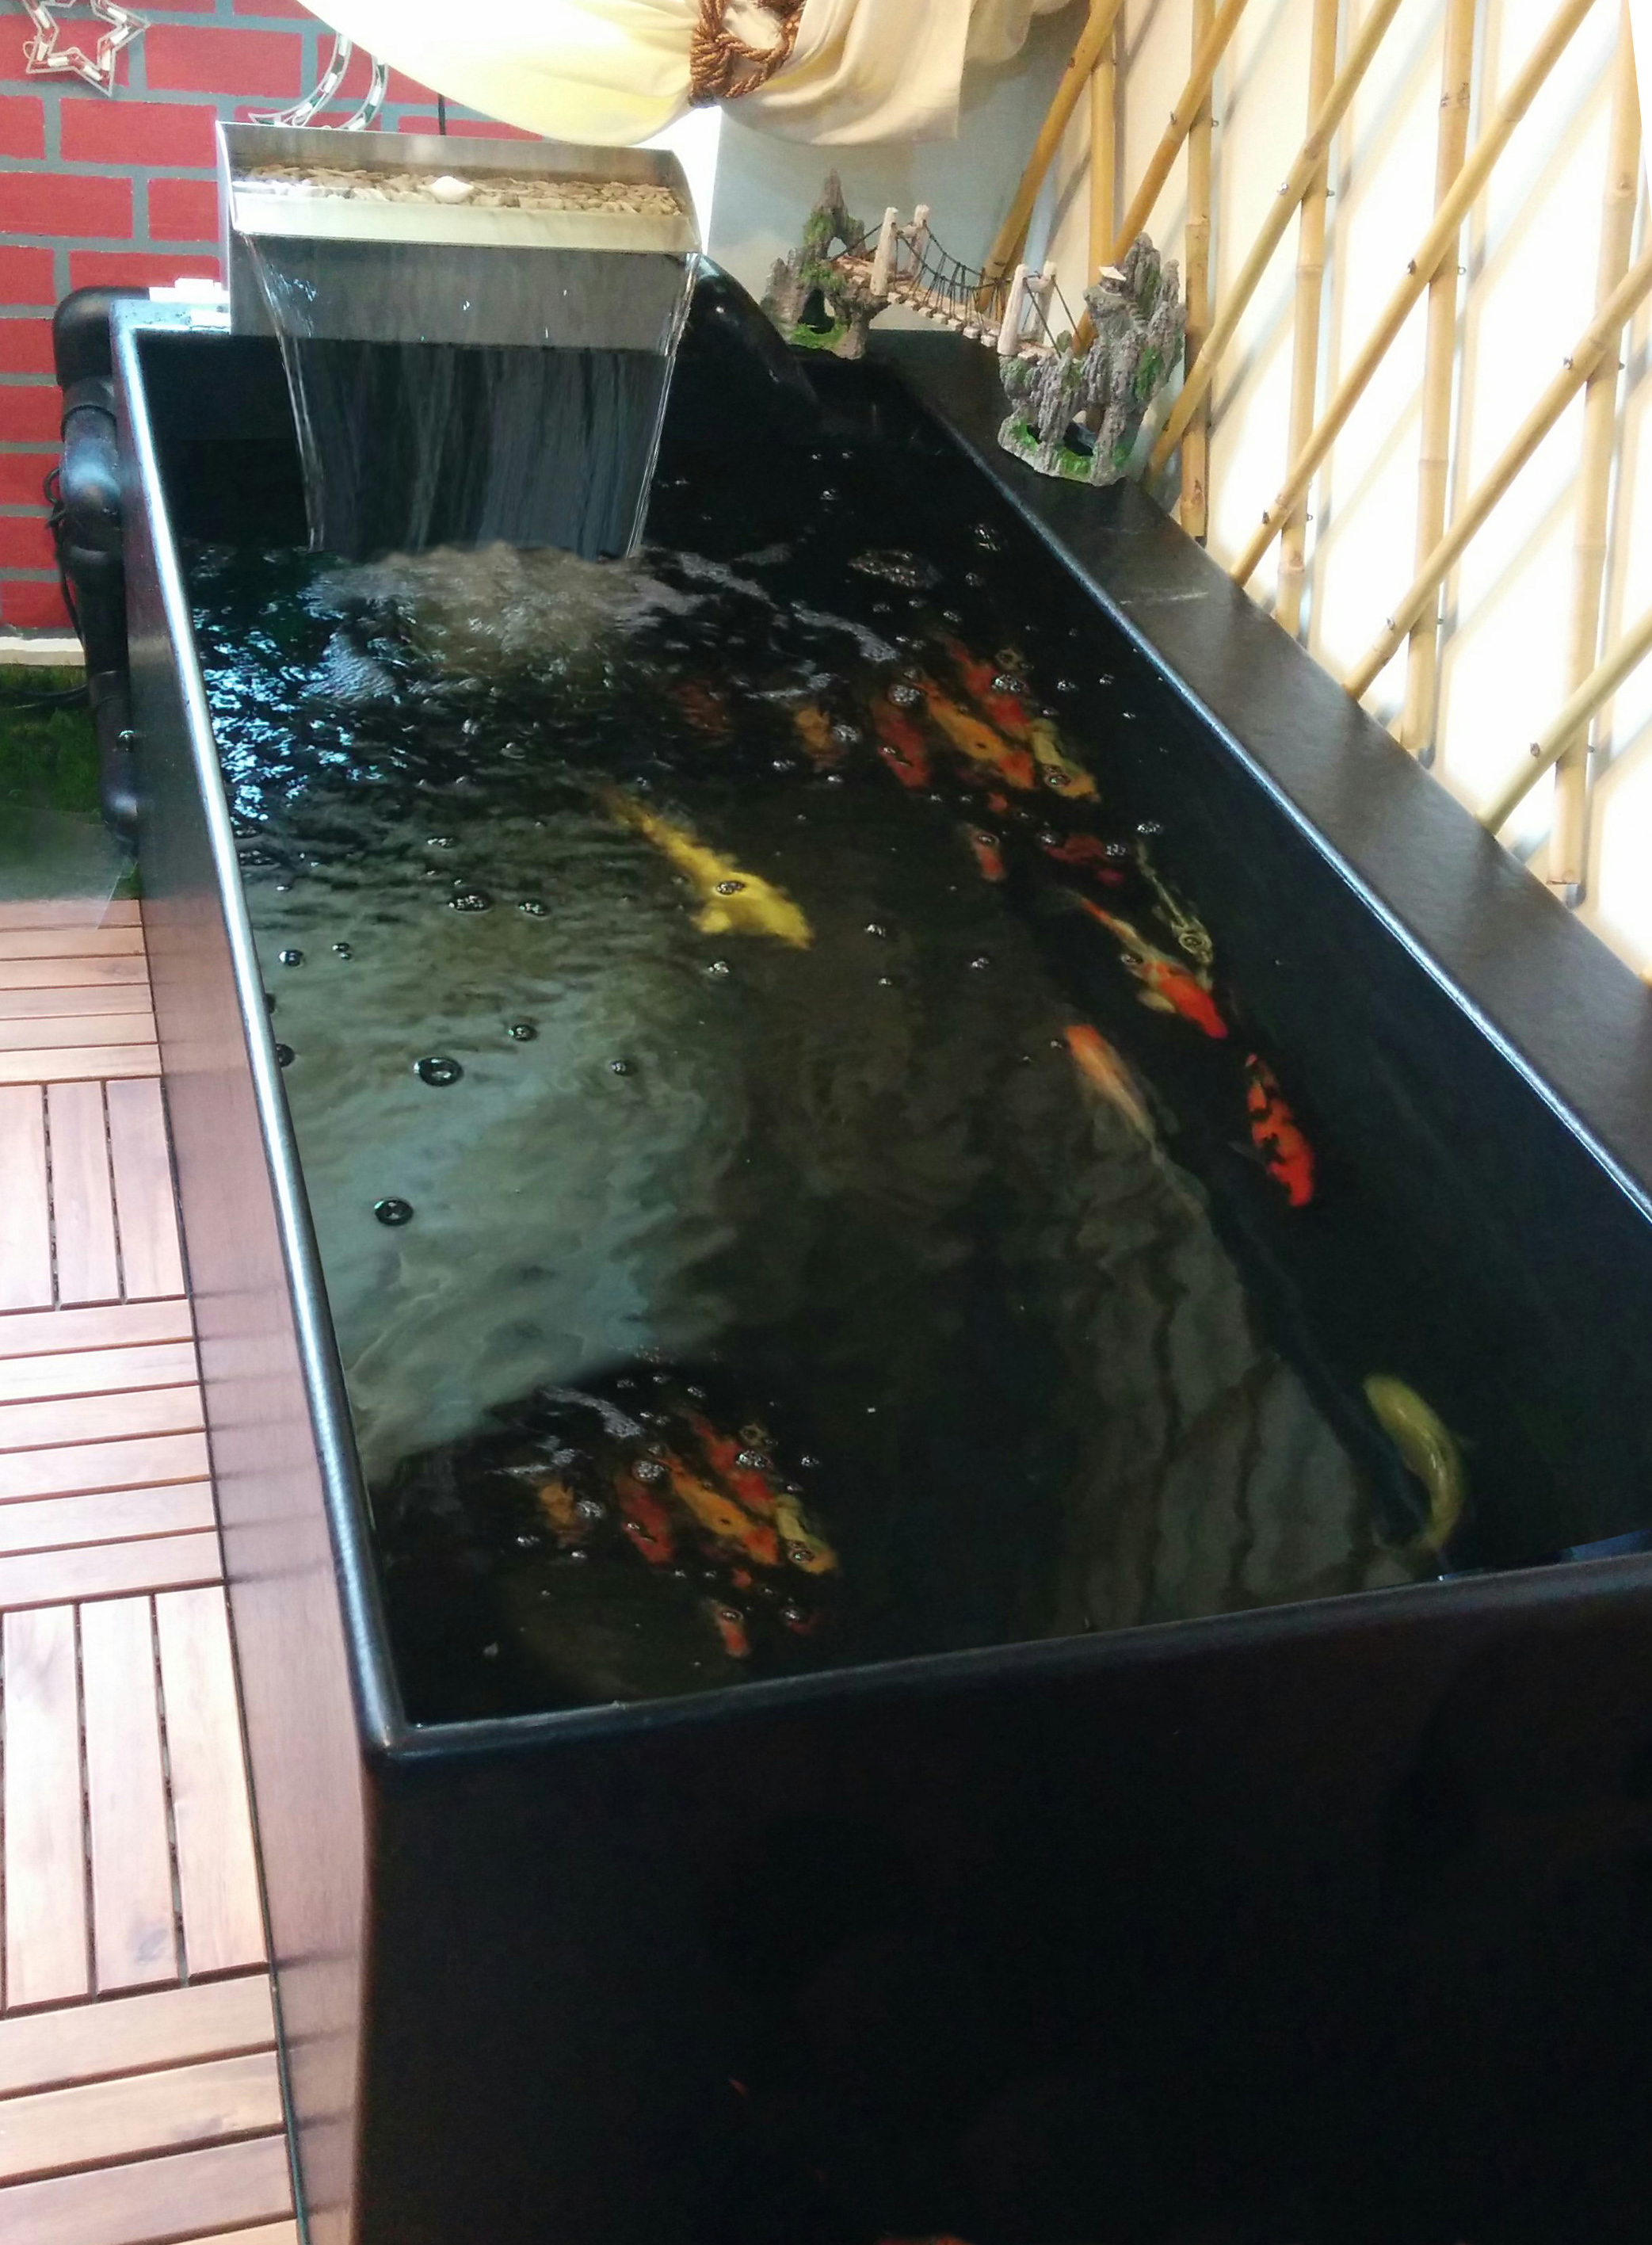 koi pond allows room for koi to grow